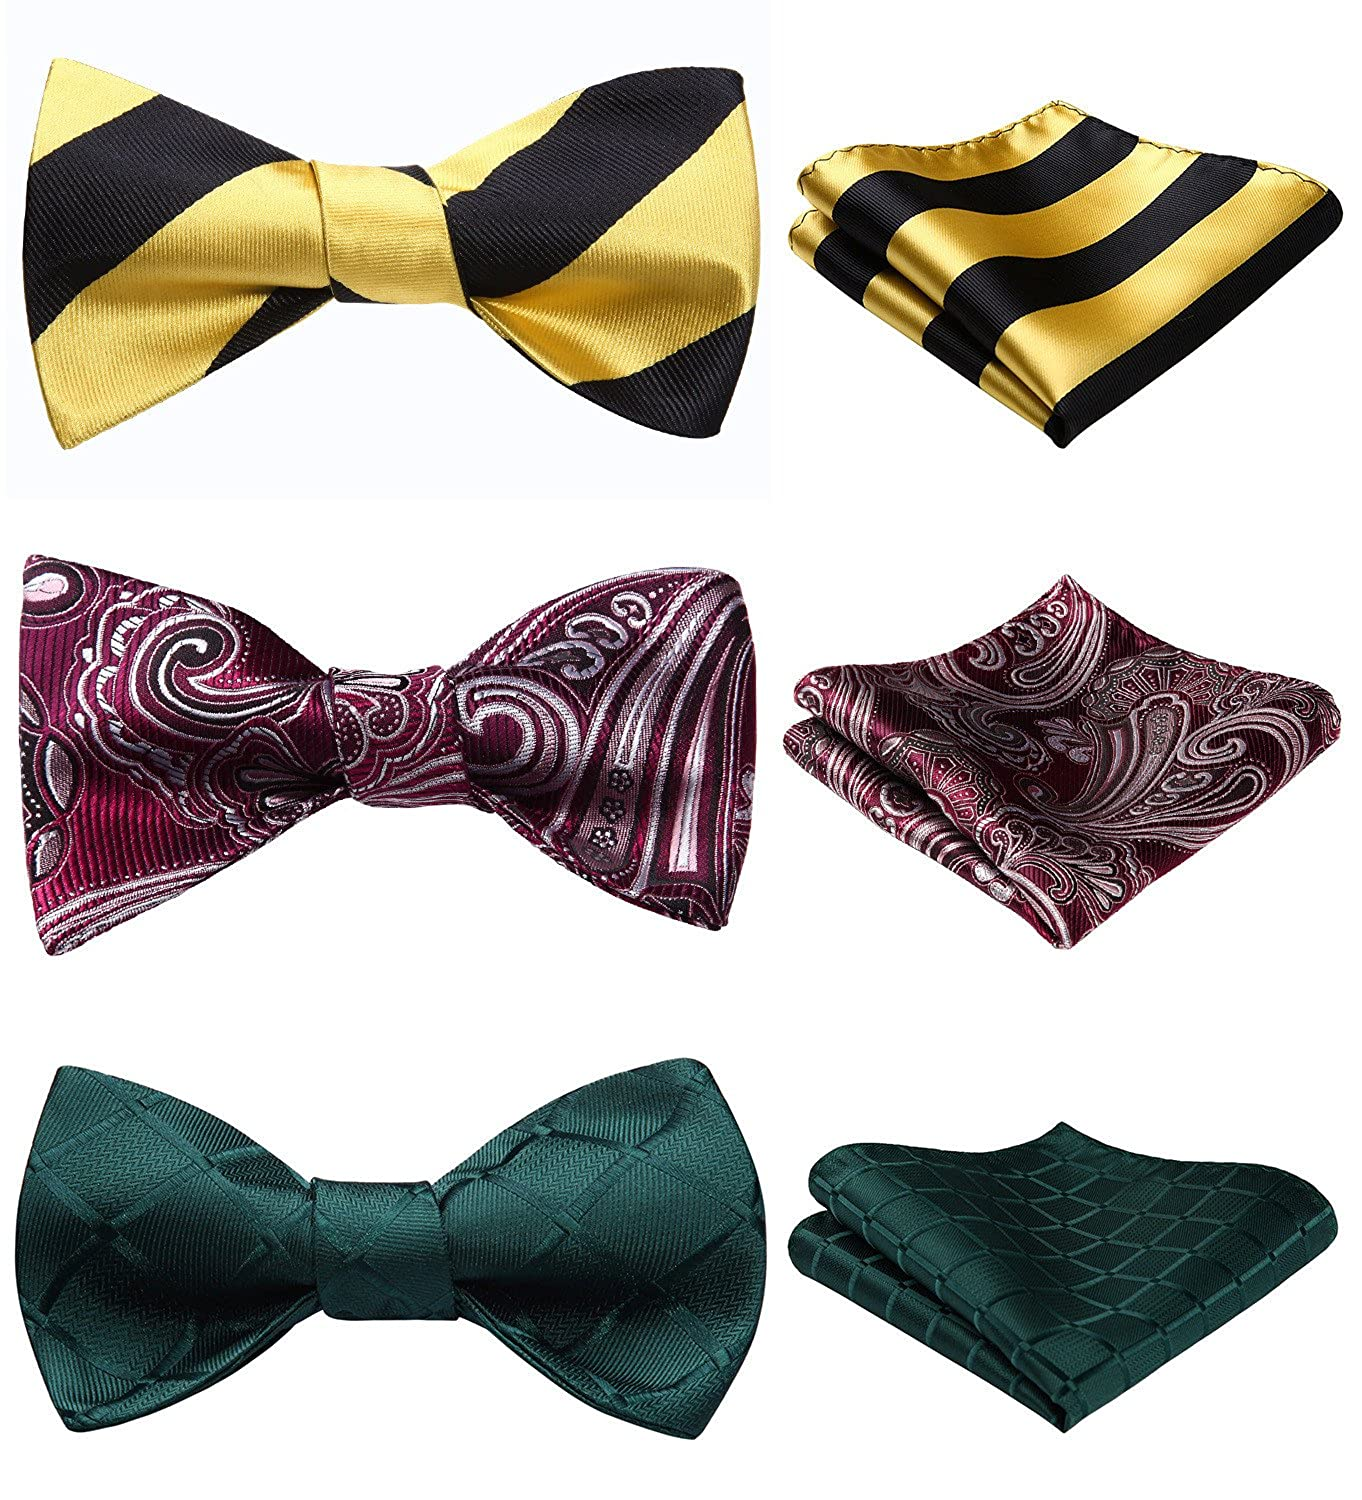 Enmain 3 Packs Classic Mens Adjustable Multiple Self Tie Bow tie /& Pocket Square Sets Good Gift for Men